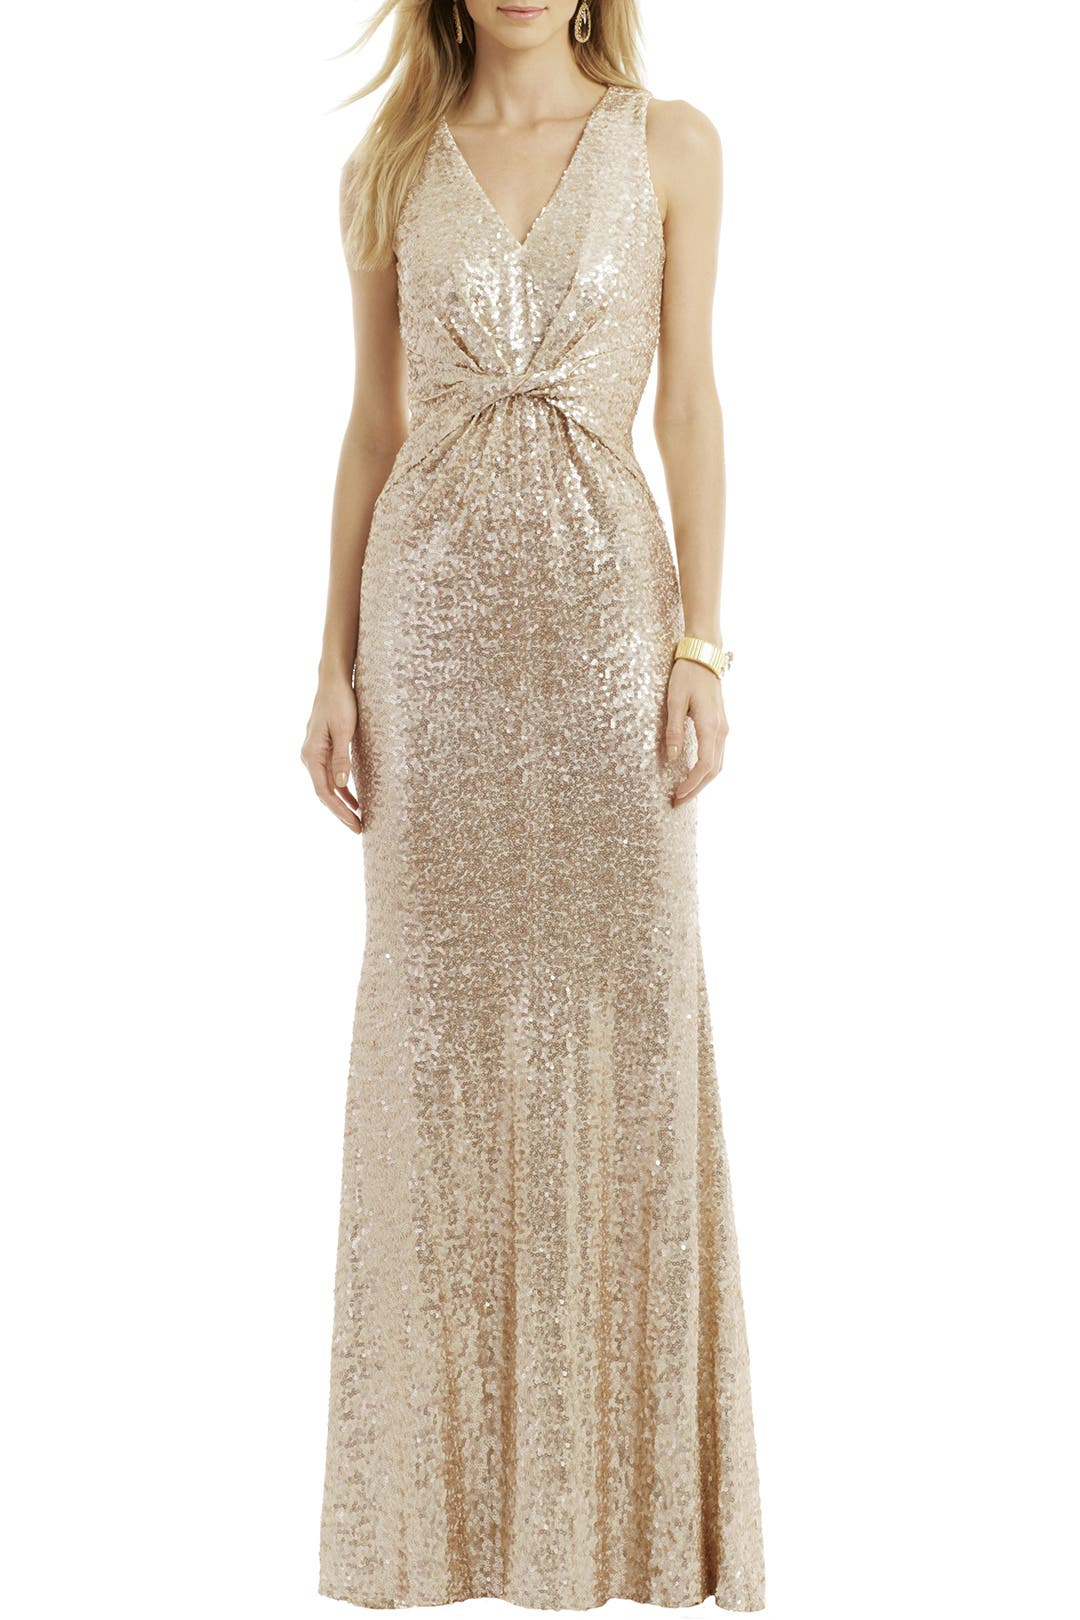 Brand Badgley Mischka Great selection and prices for Wedding Gifts ...